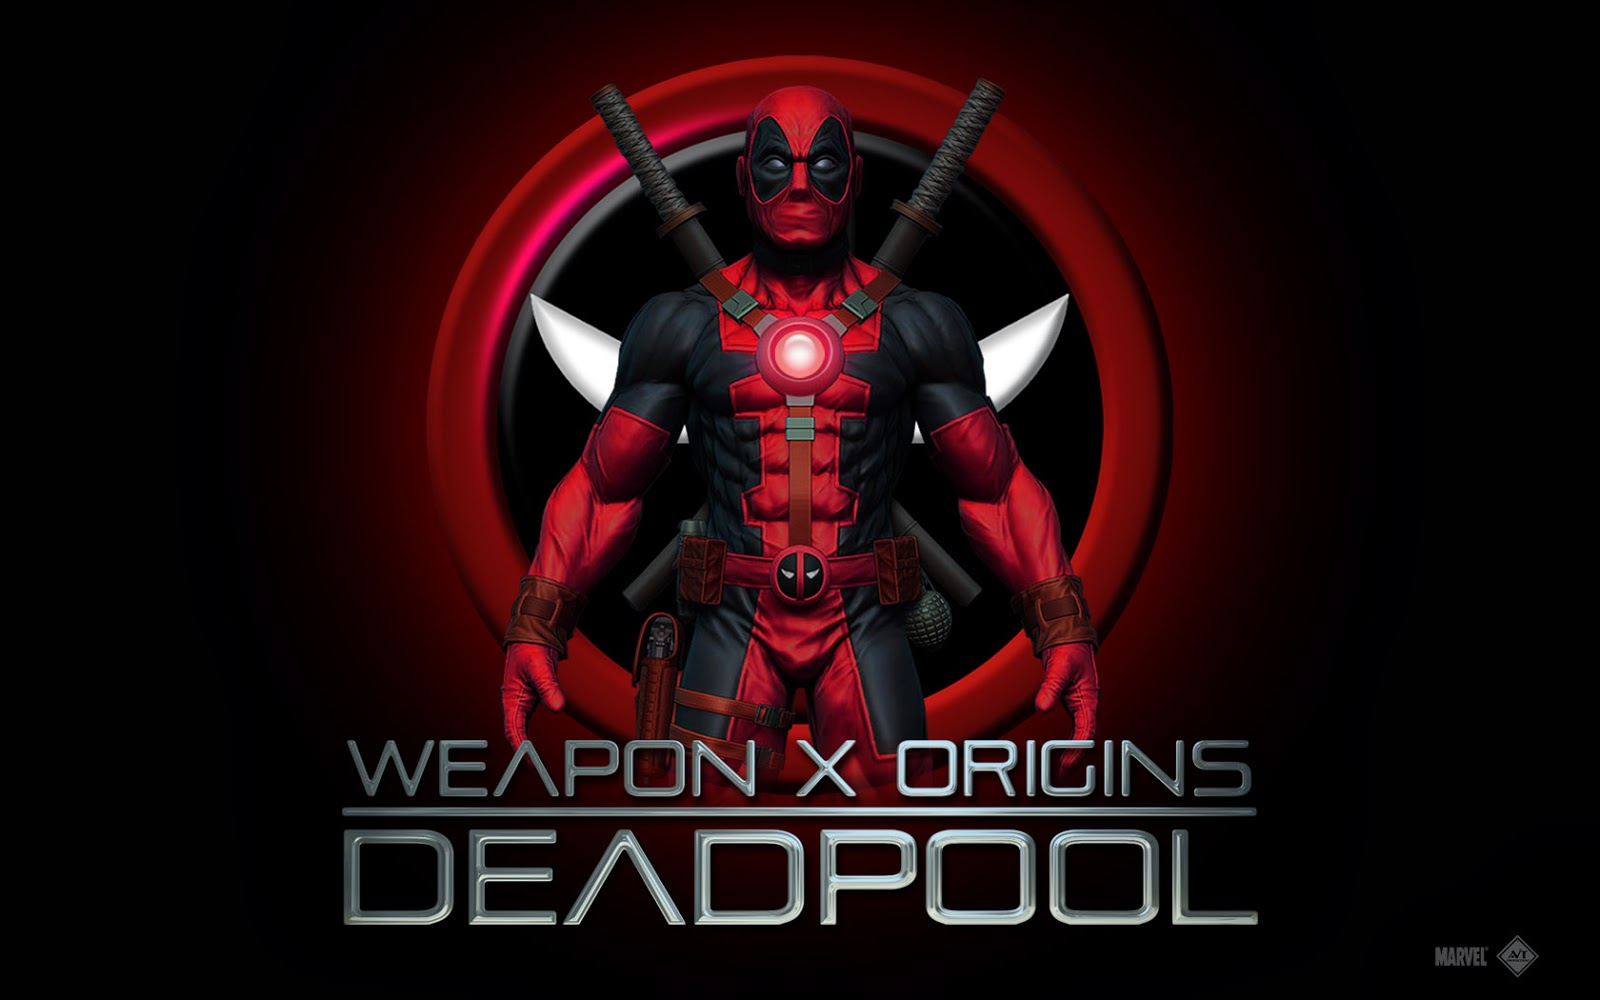 deadpool-movie-wallpaper-17713-hd-wallpapers jpgDeadpool Wallpaper Hd 1080p